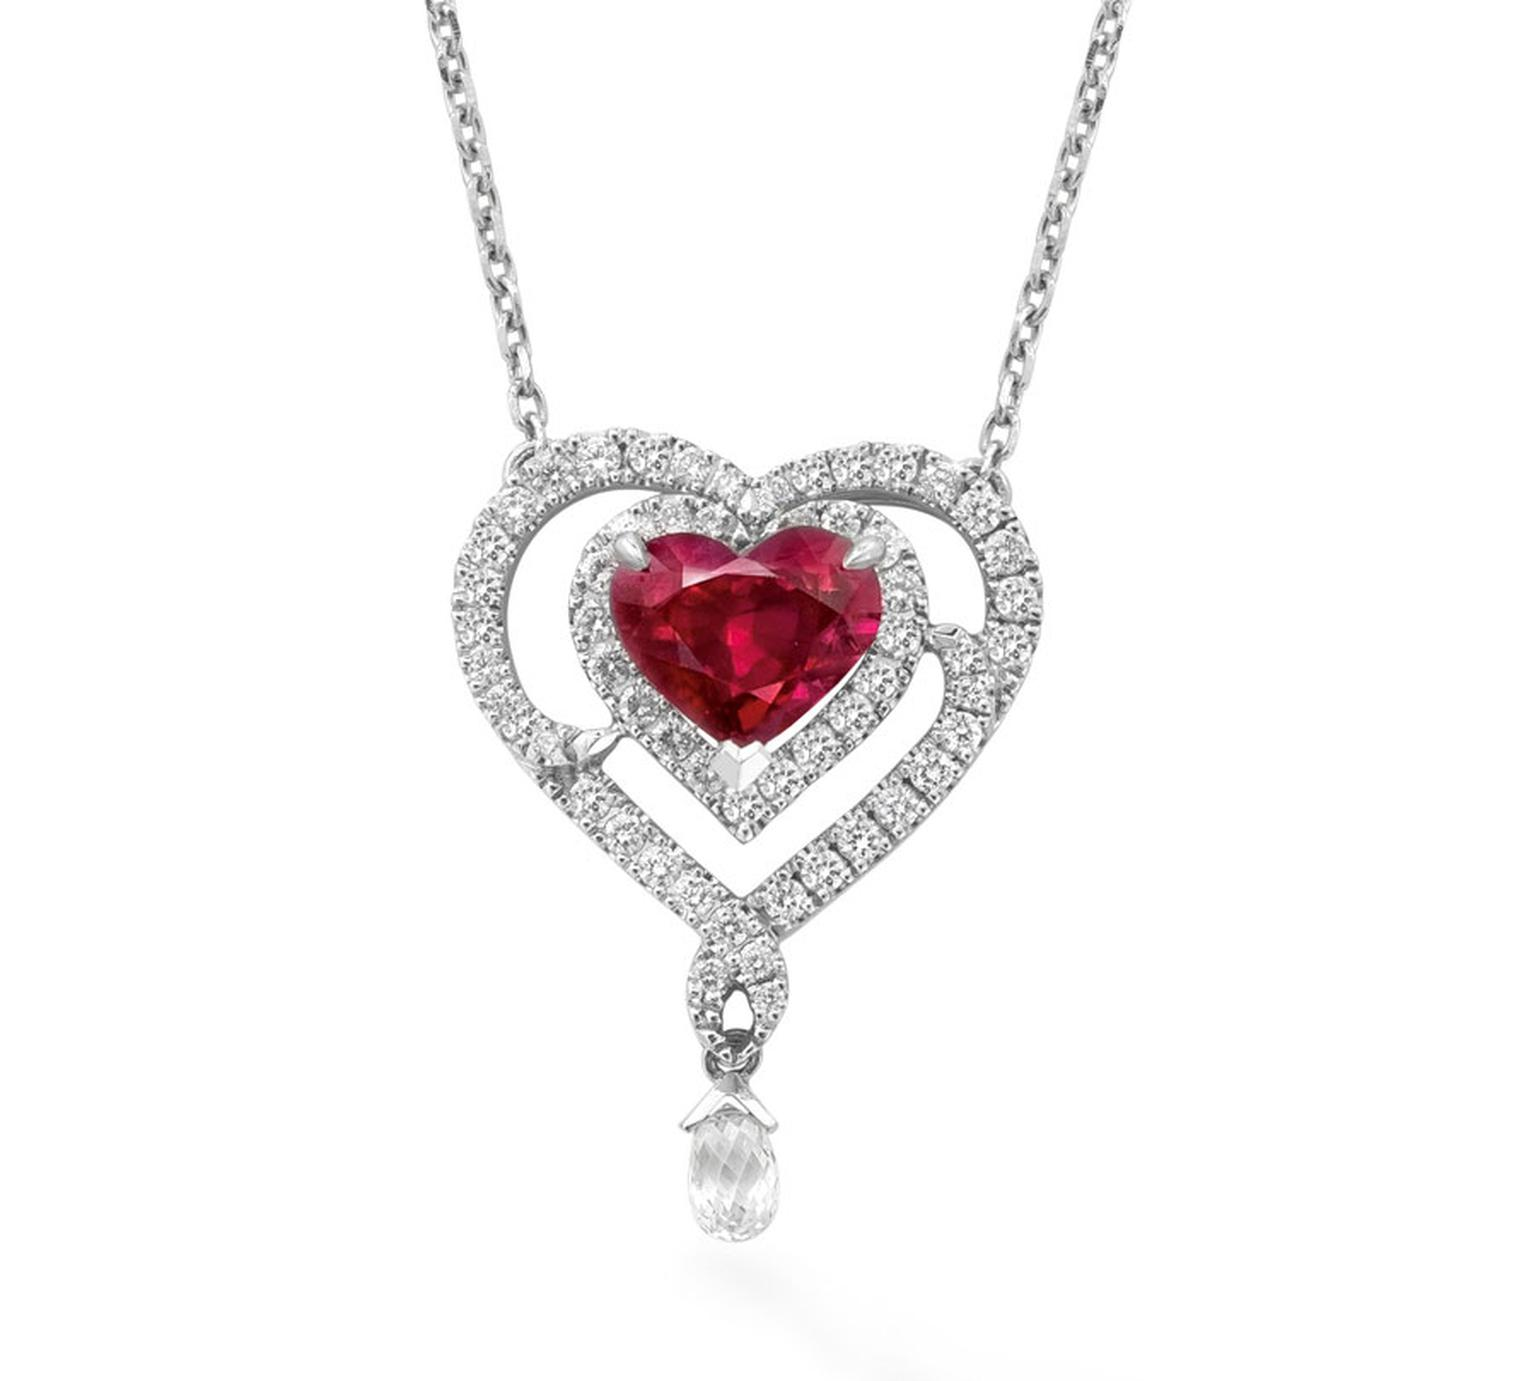 Boodles-pages78-79_4-VALENTINES.jpg